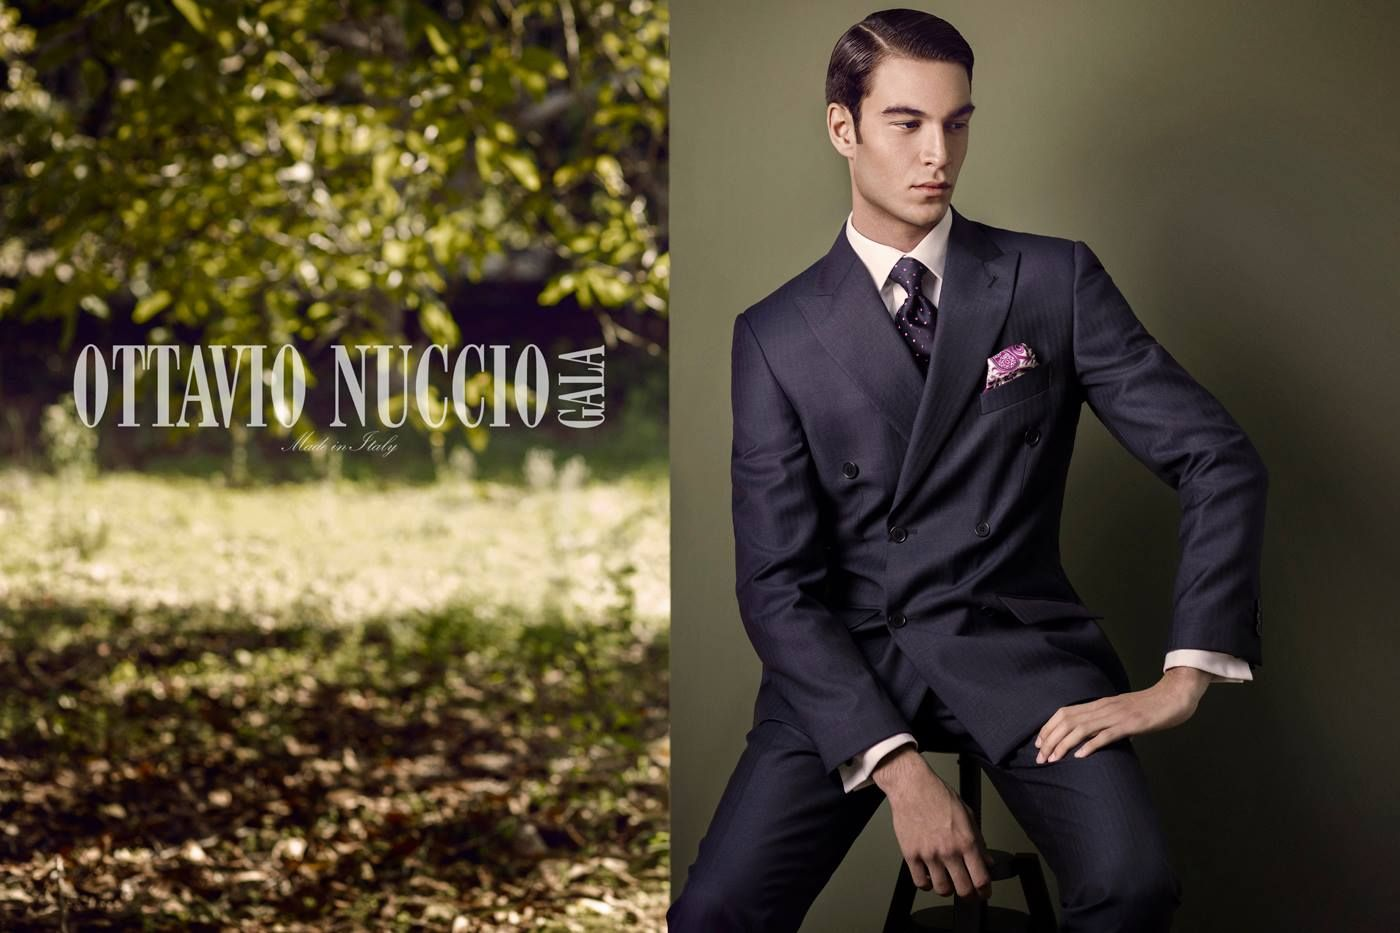 Advertising campaign 2017 - Ottavio Nuccio Gala gentleman collection  Double breasted peak lapel suit: perfect formalwear! #luxury #menswear #madeinitaly #elegance #fashion